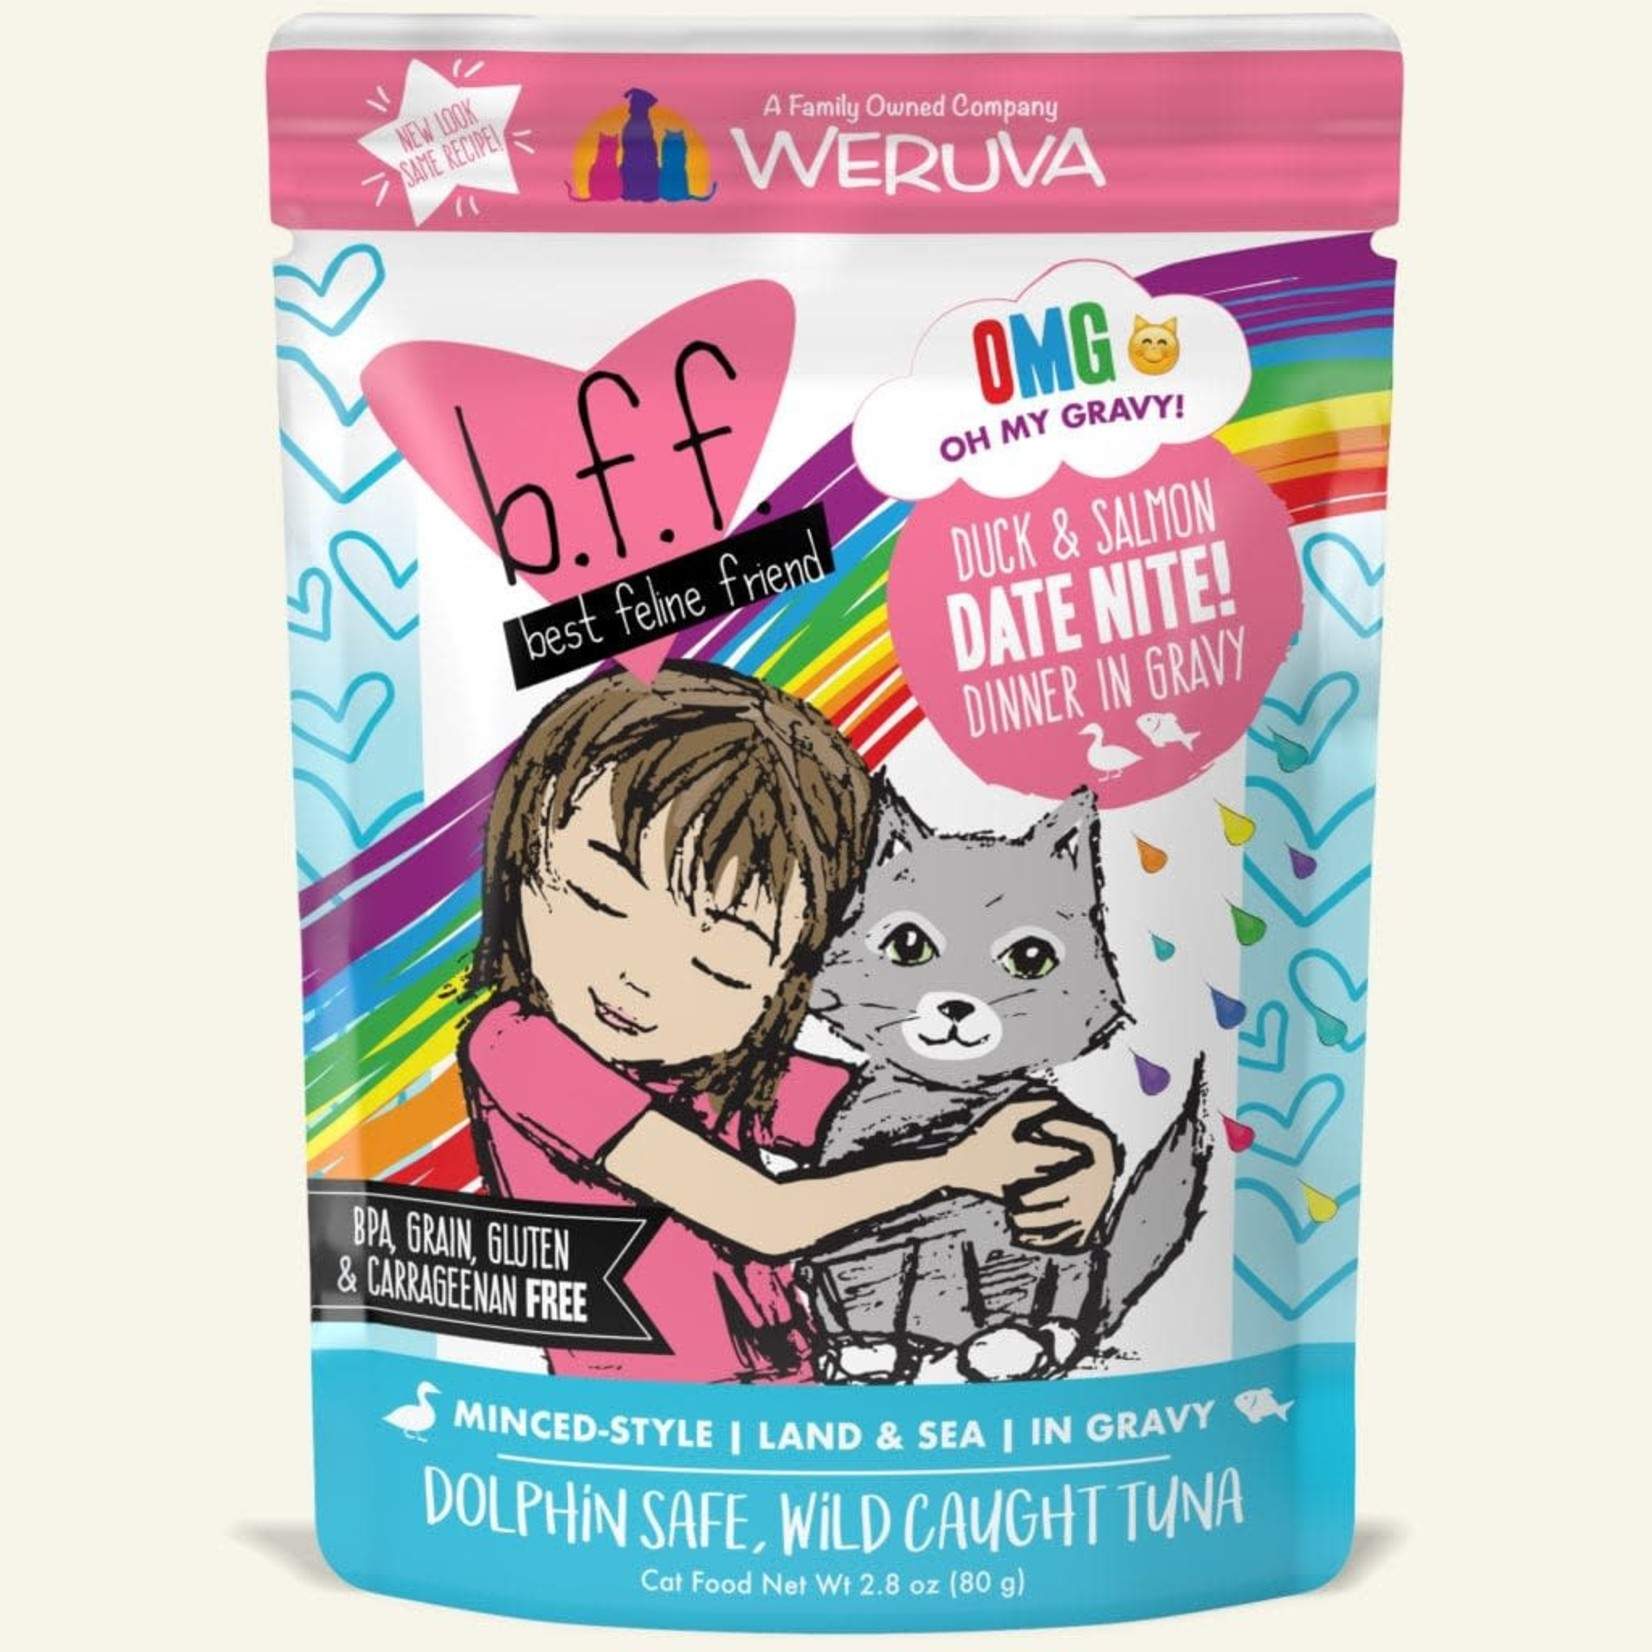 Weruva Inc. BFF OMG Cat Duck & Salmon Date Nite 2.8 OZ Pouch